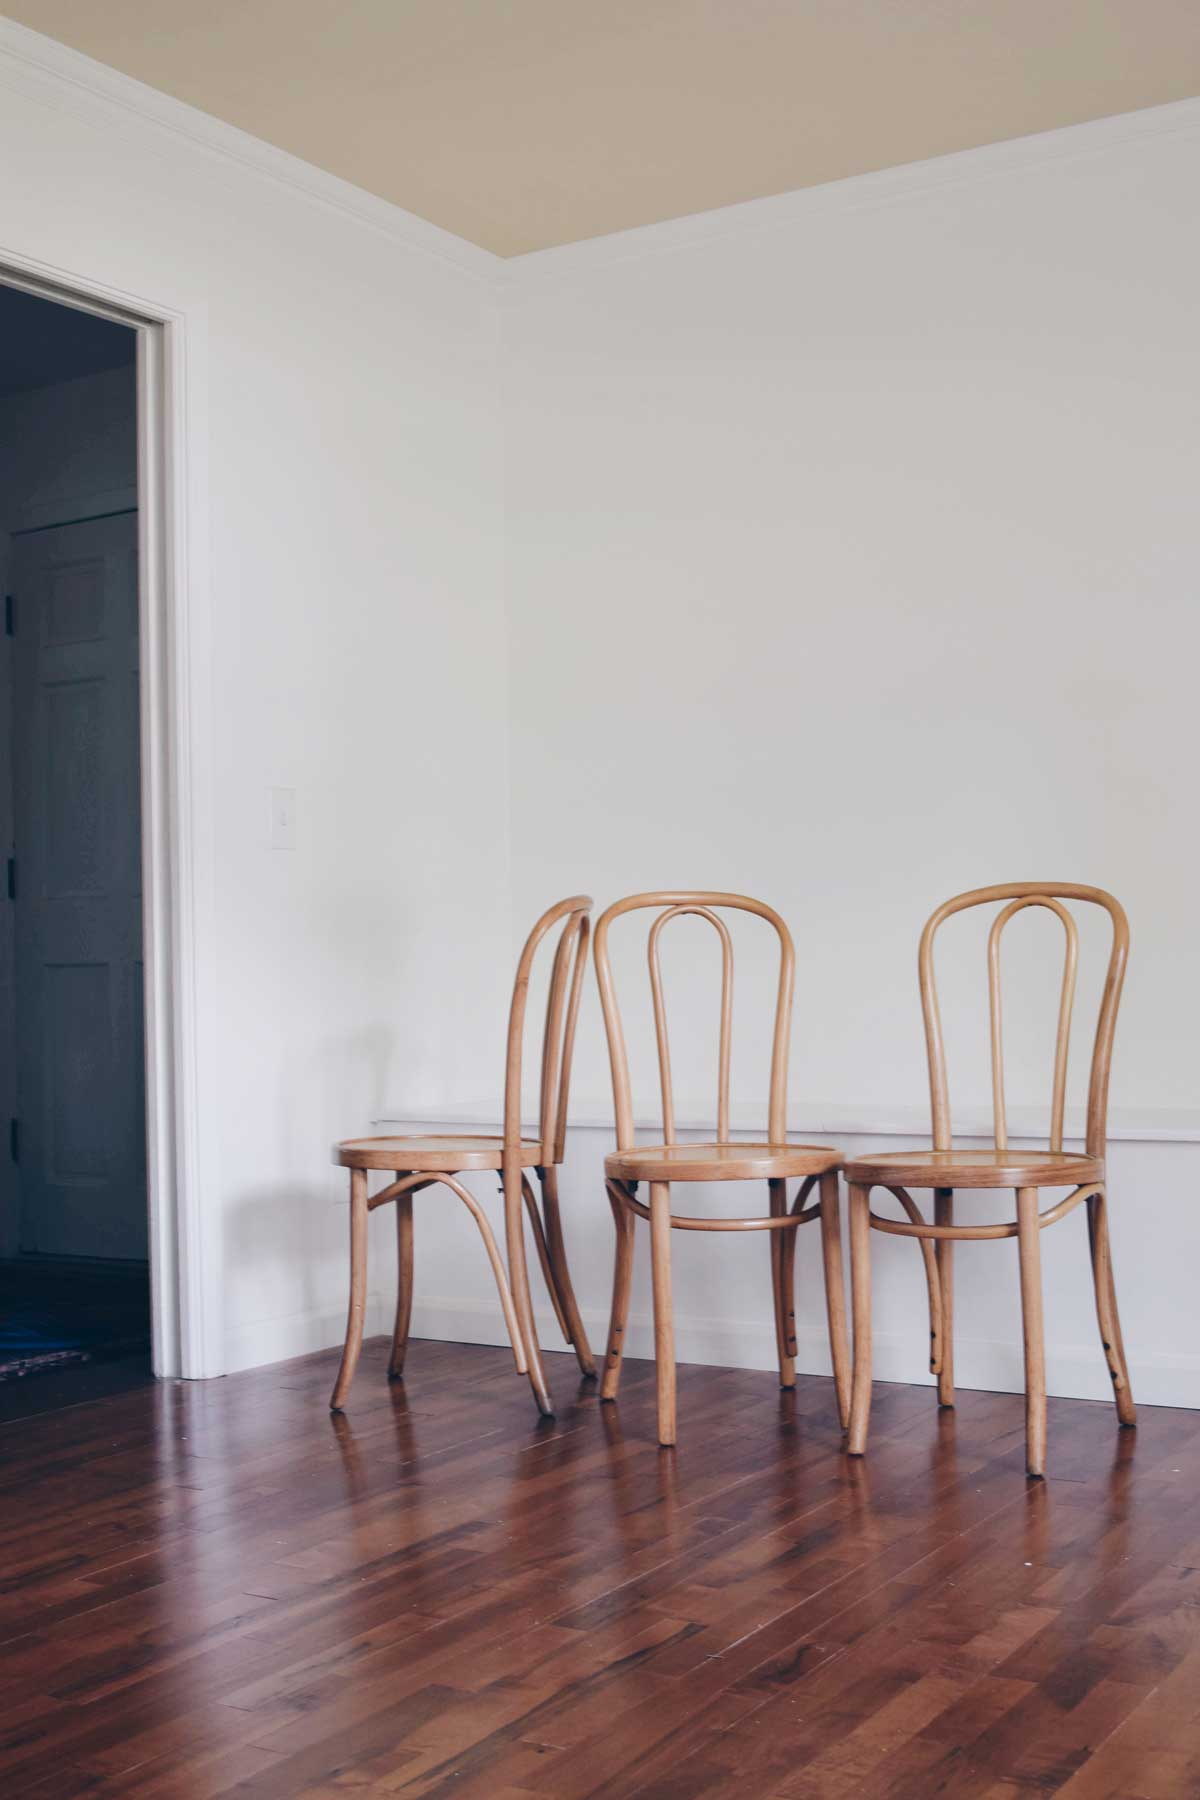 REFINISHING BENTWOOD CHAIRS